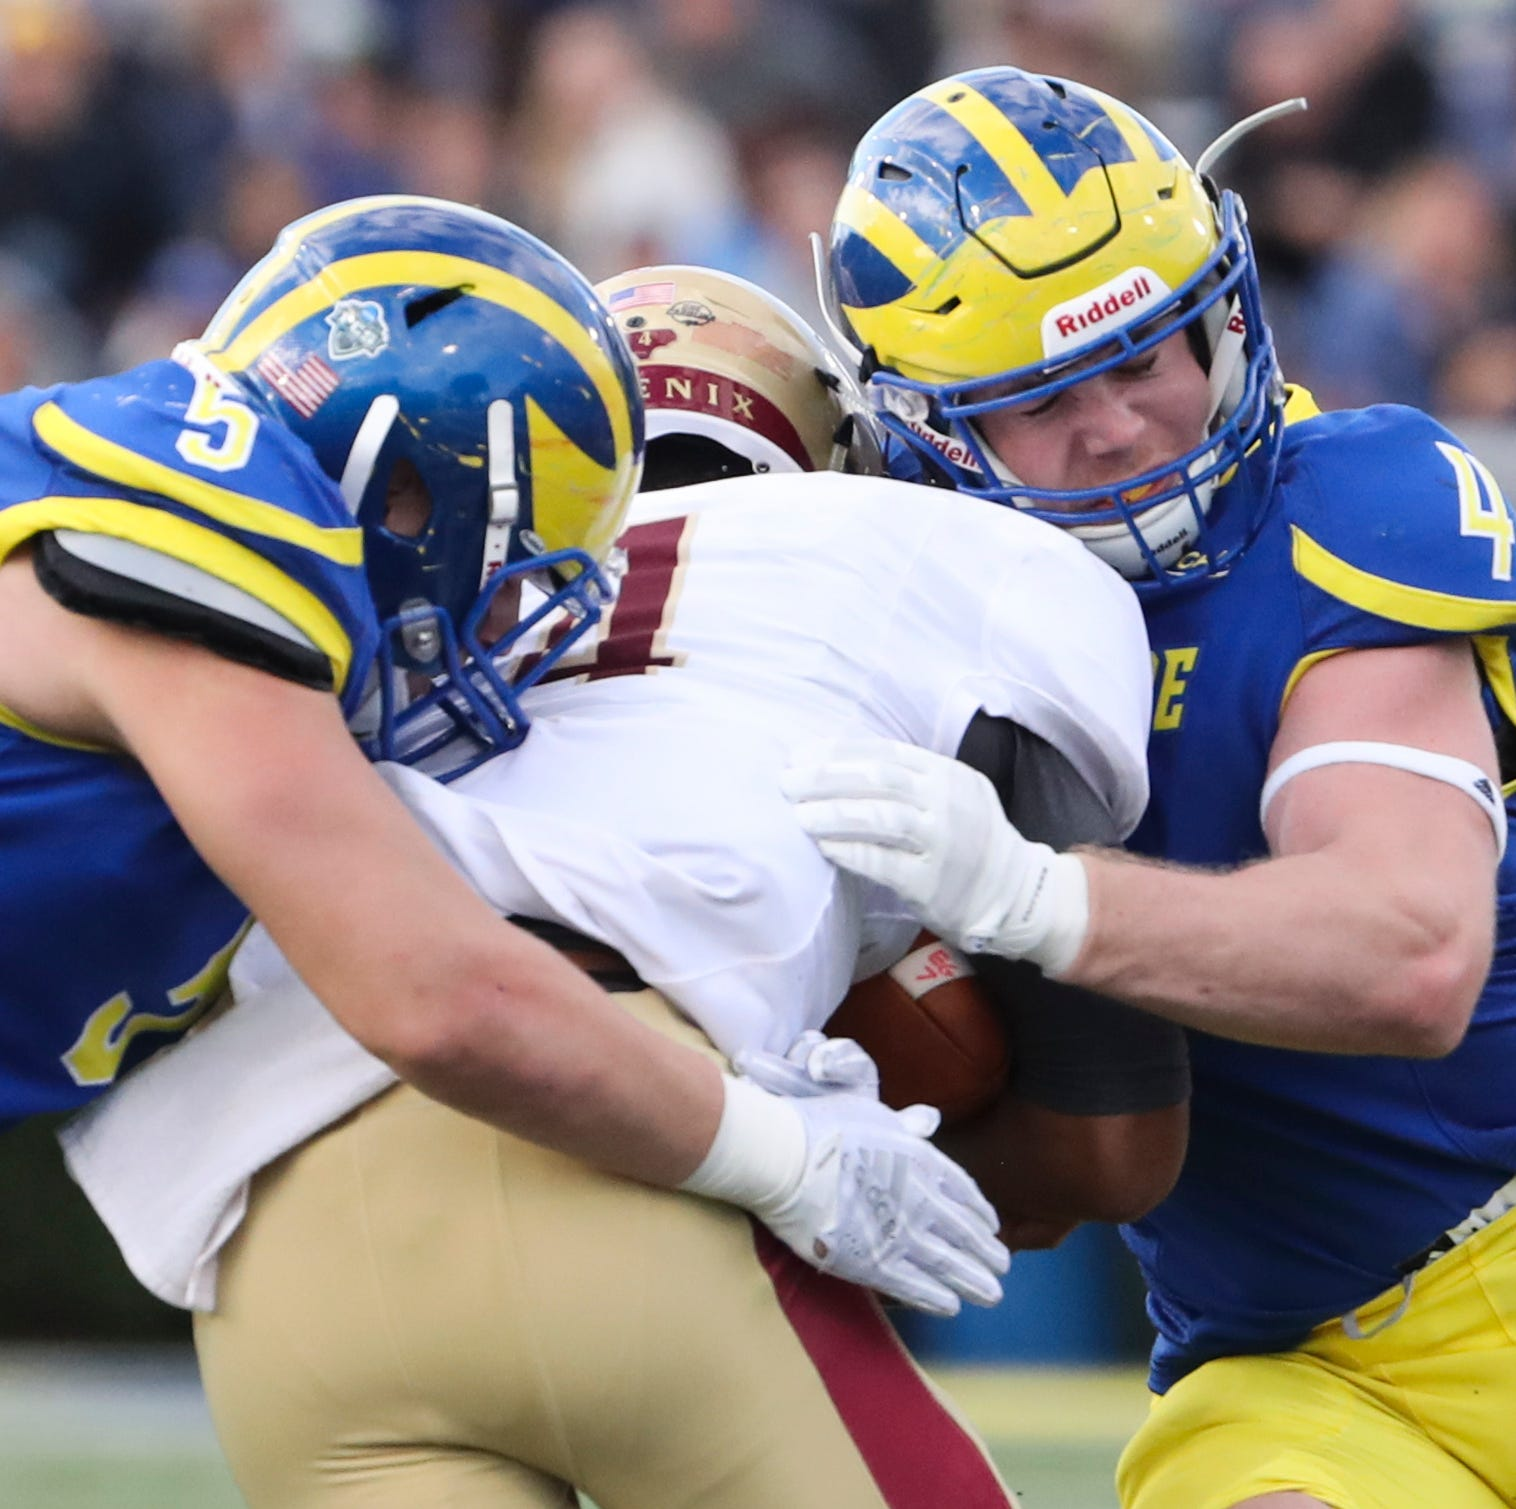 Colby Reeder overcomes early back trouble to excel for University of Delaware defense